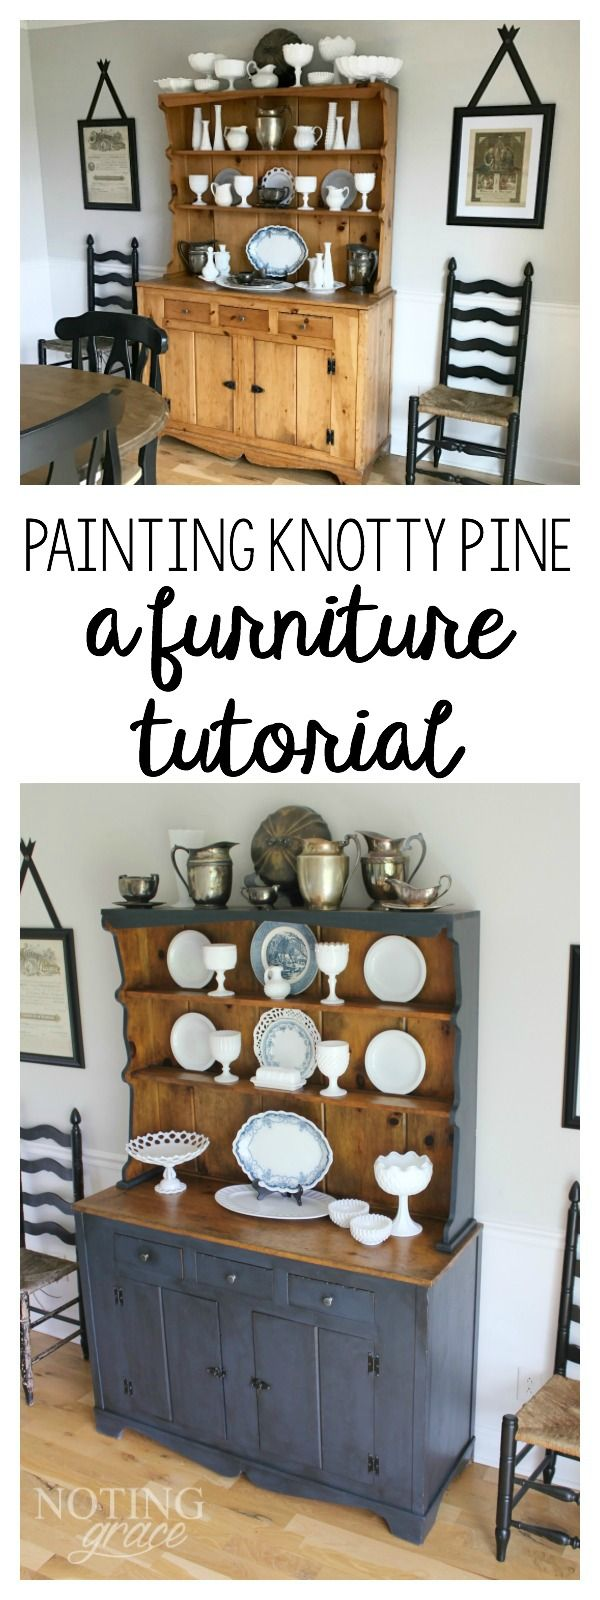 Painting over Knotty Pine | Pine furniture, Pine kitchen ...